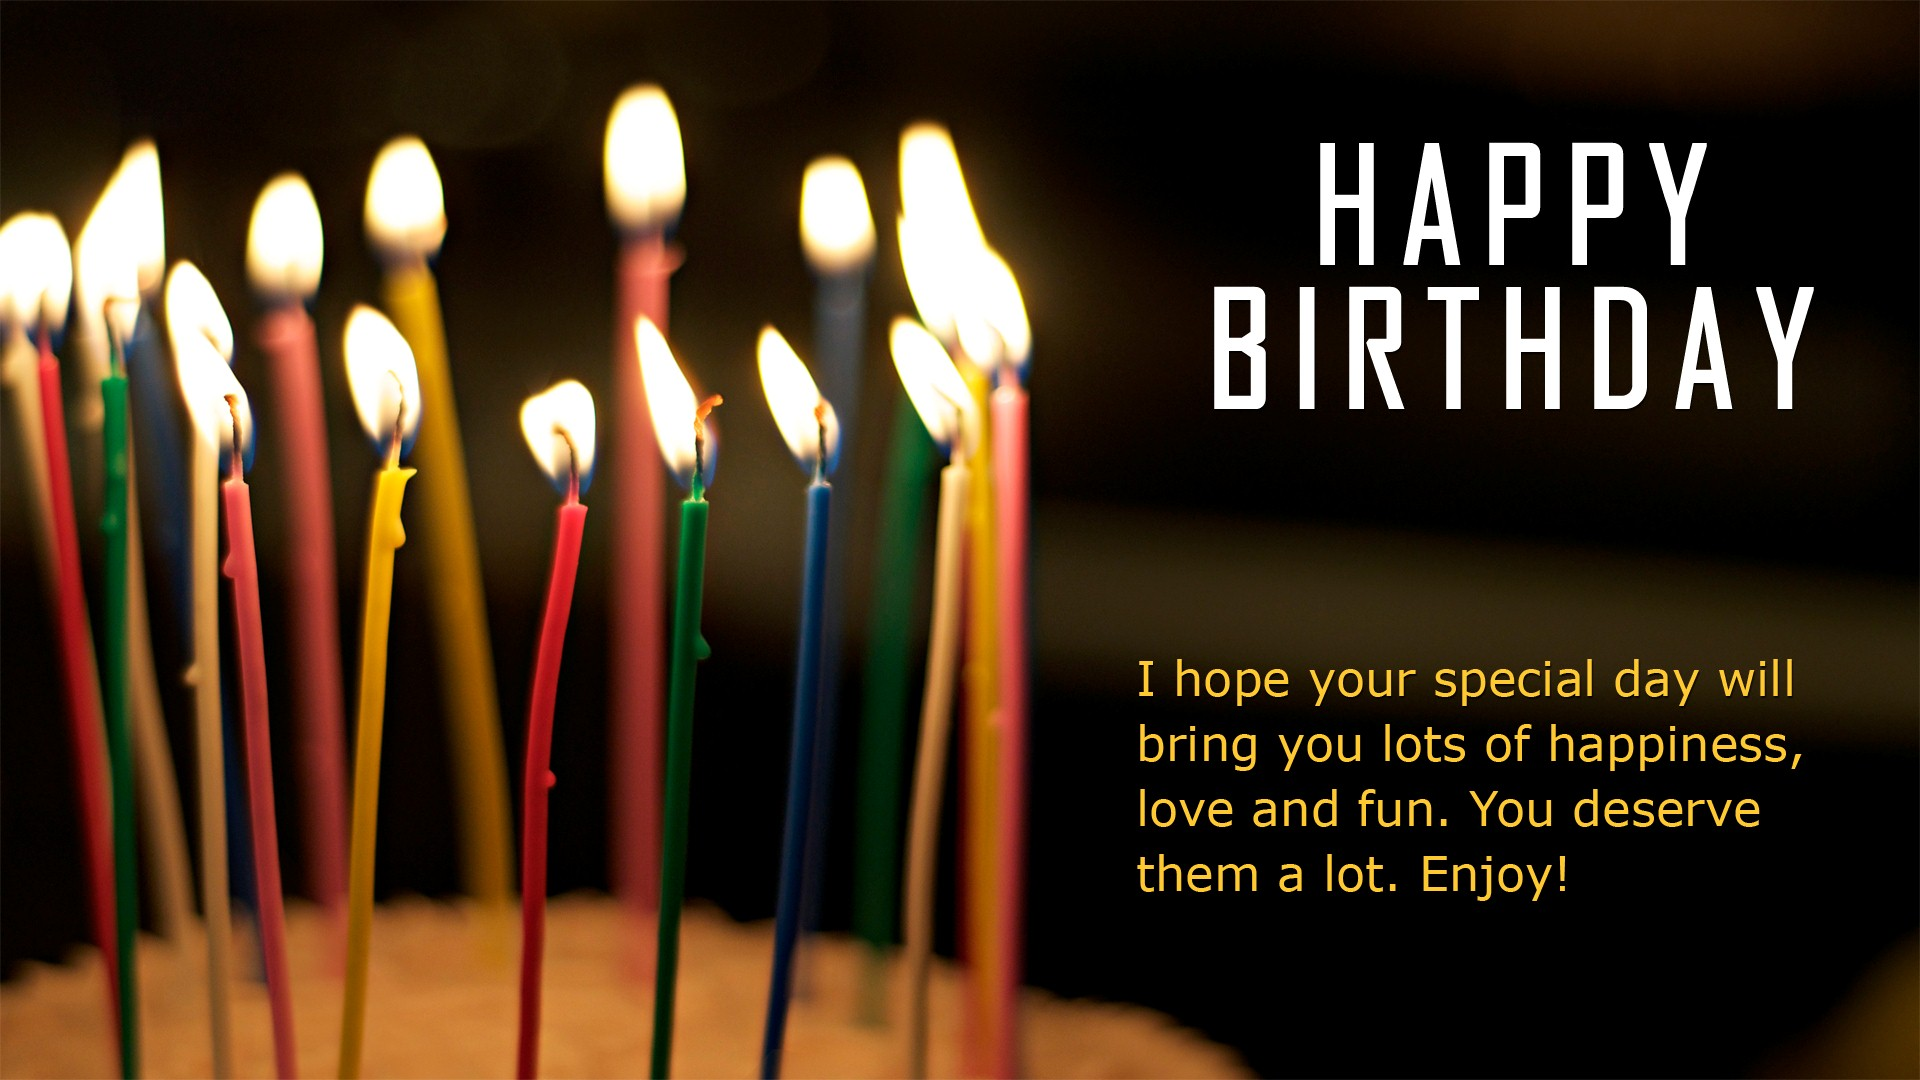 happy birthday greetings hd images ; Happy_Birthday_Greeting_Wishes_HD_Wallpapers